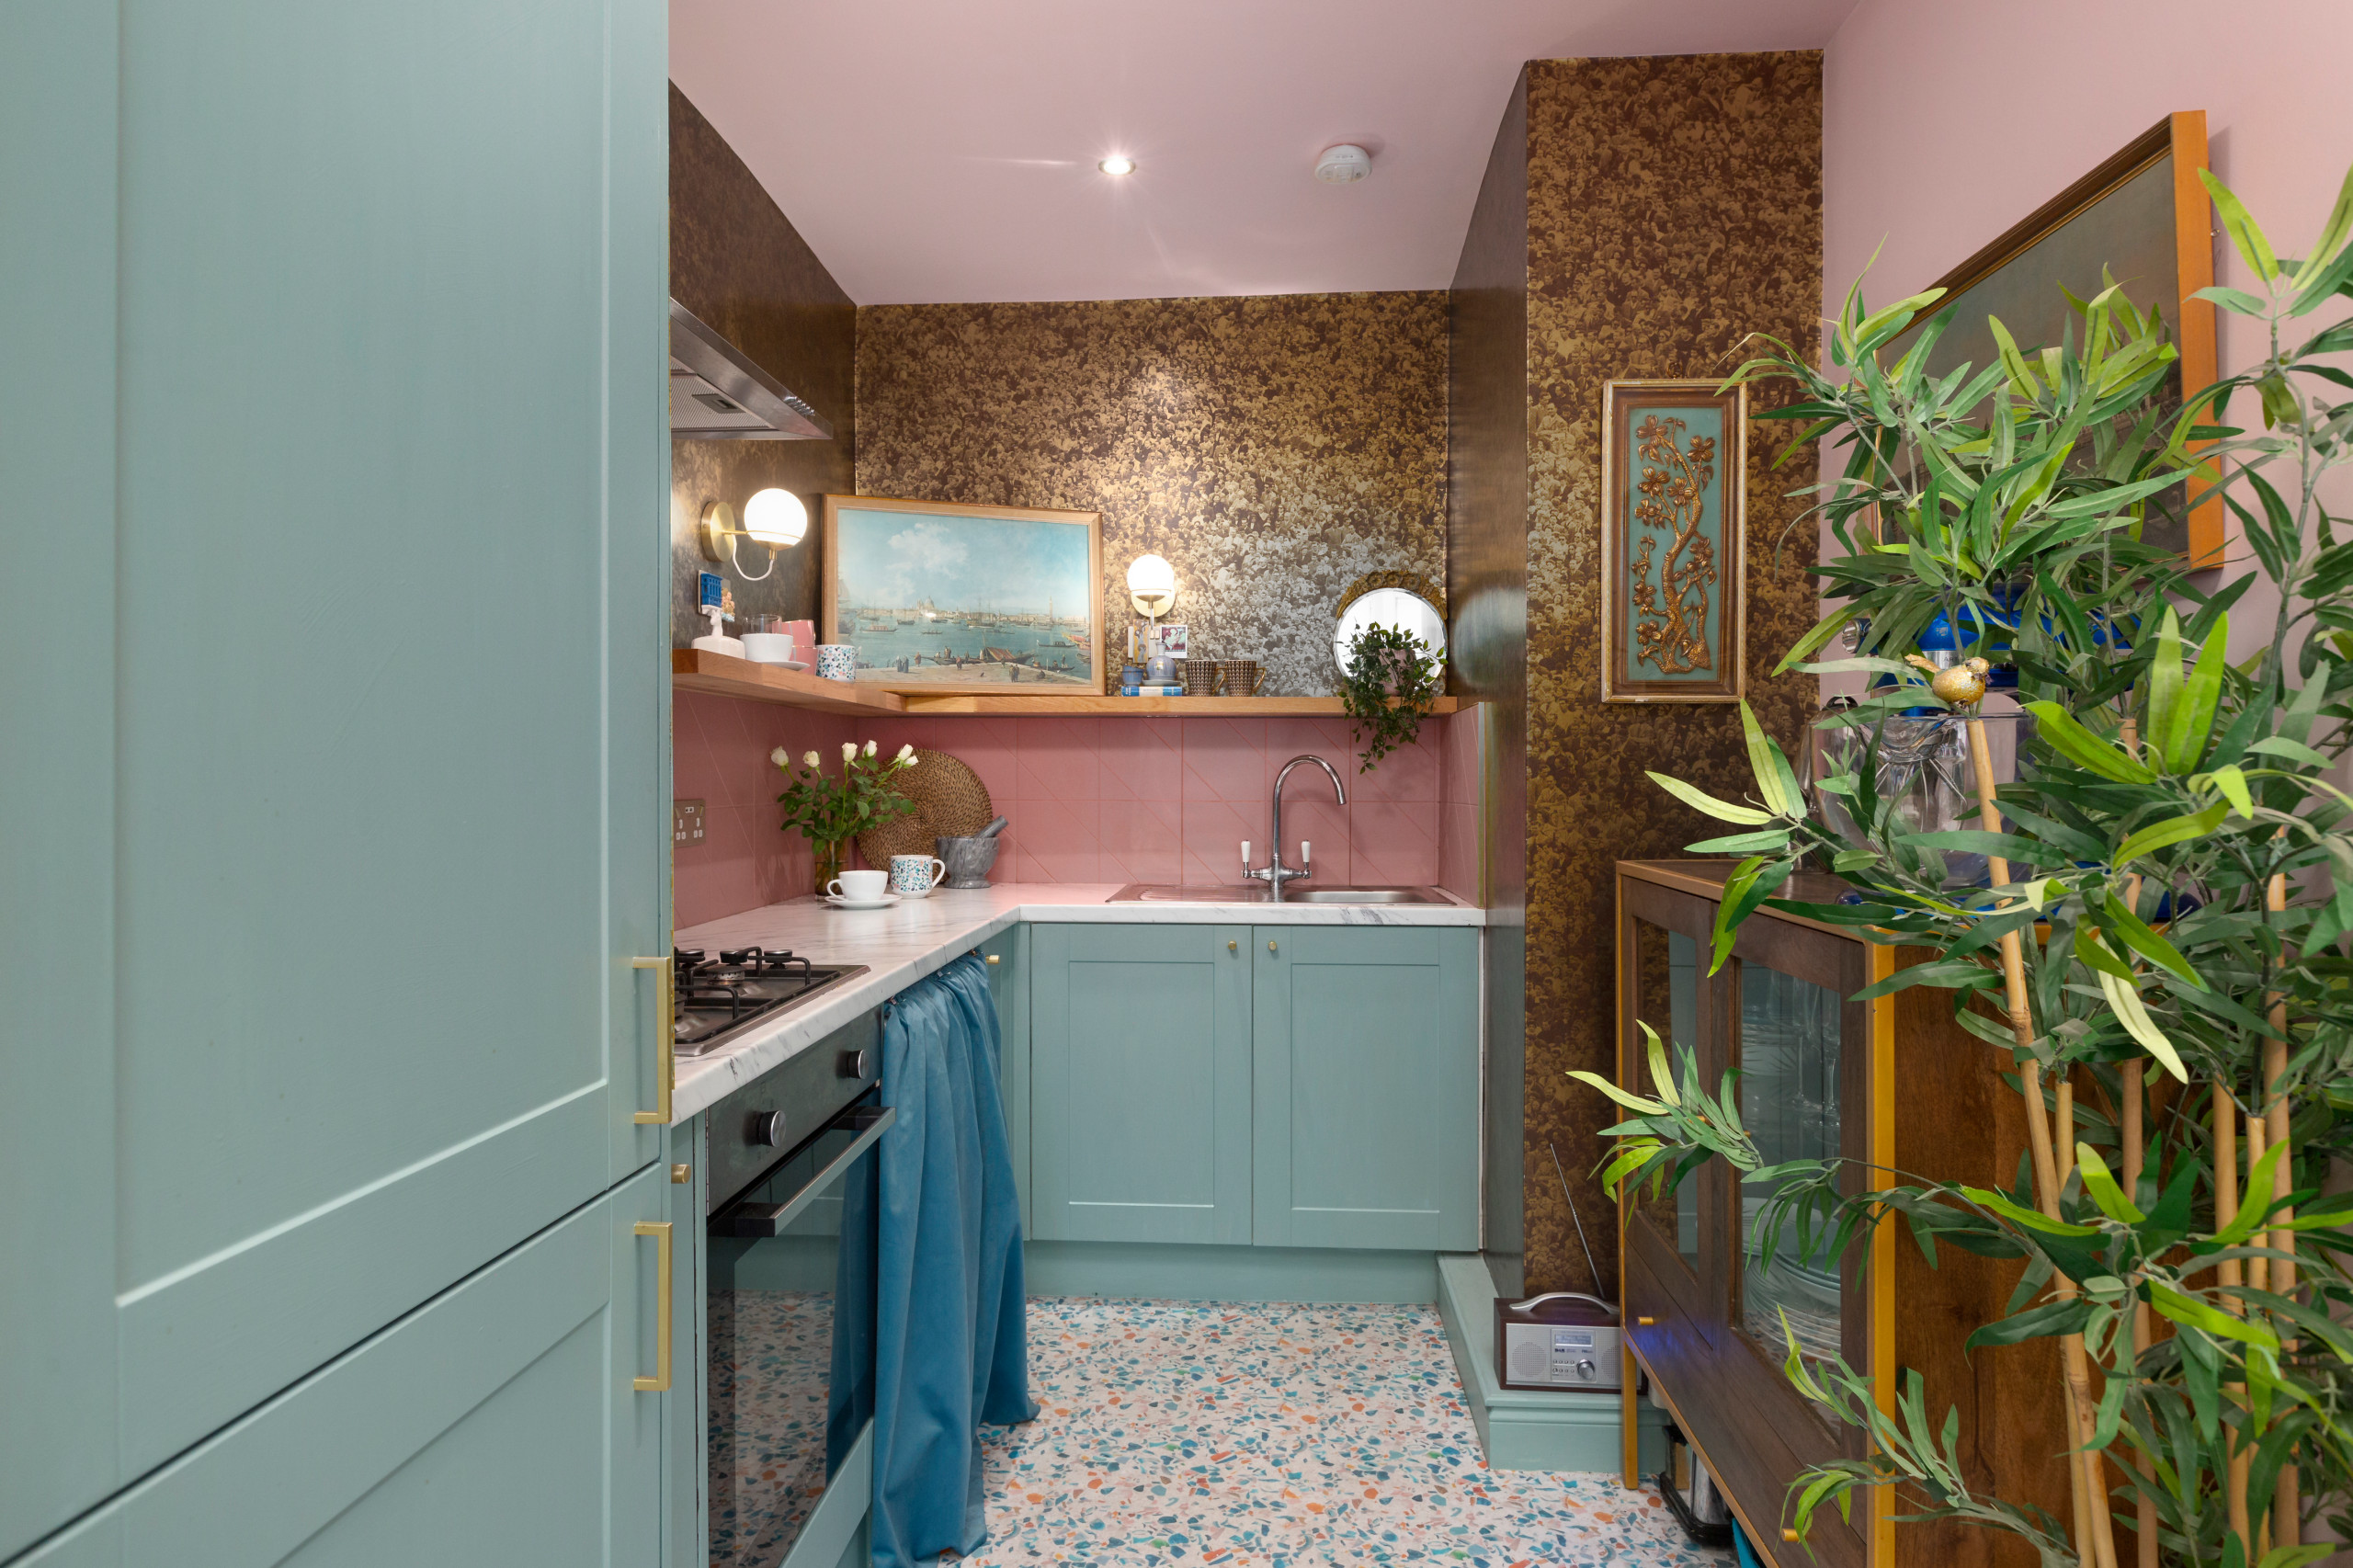 75 Beautiful Kitchen With Pink Backsplash Pictures Ideas January 2021 Houzz